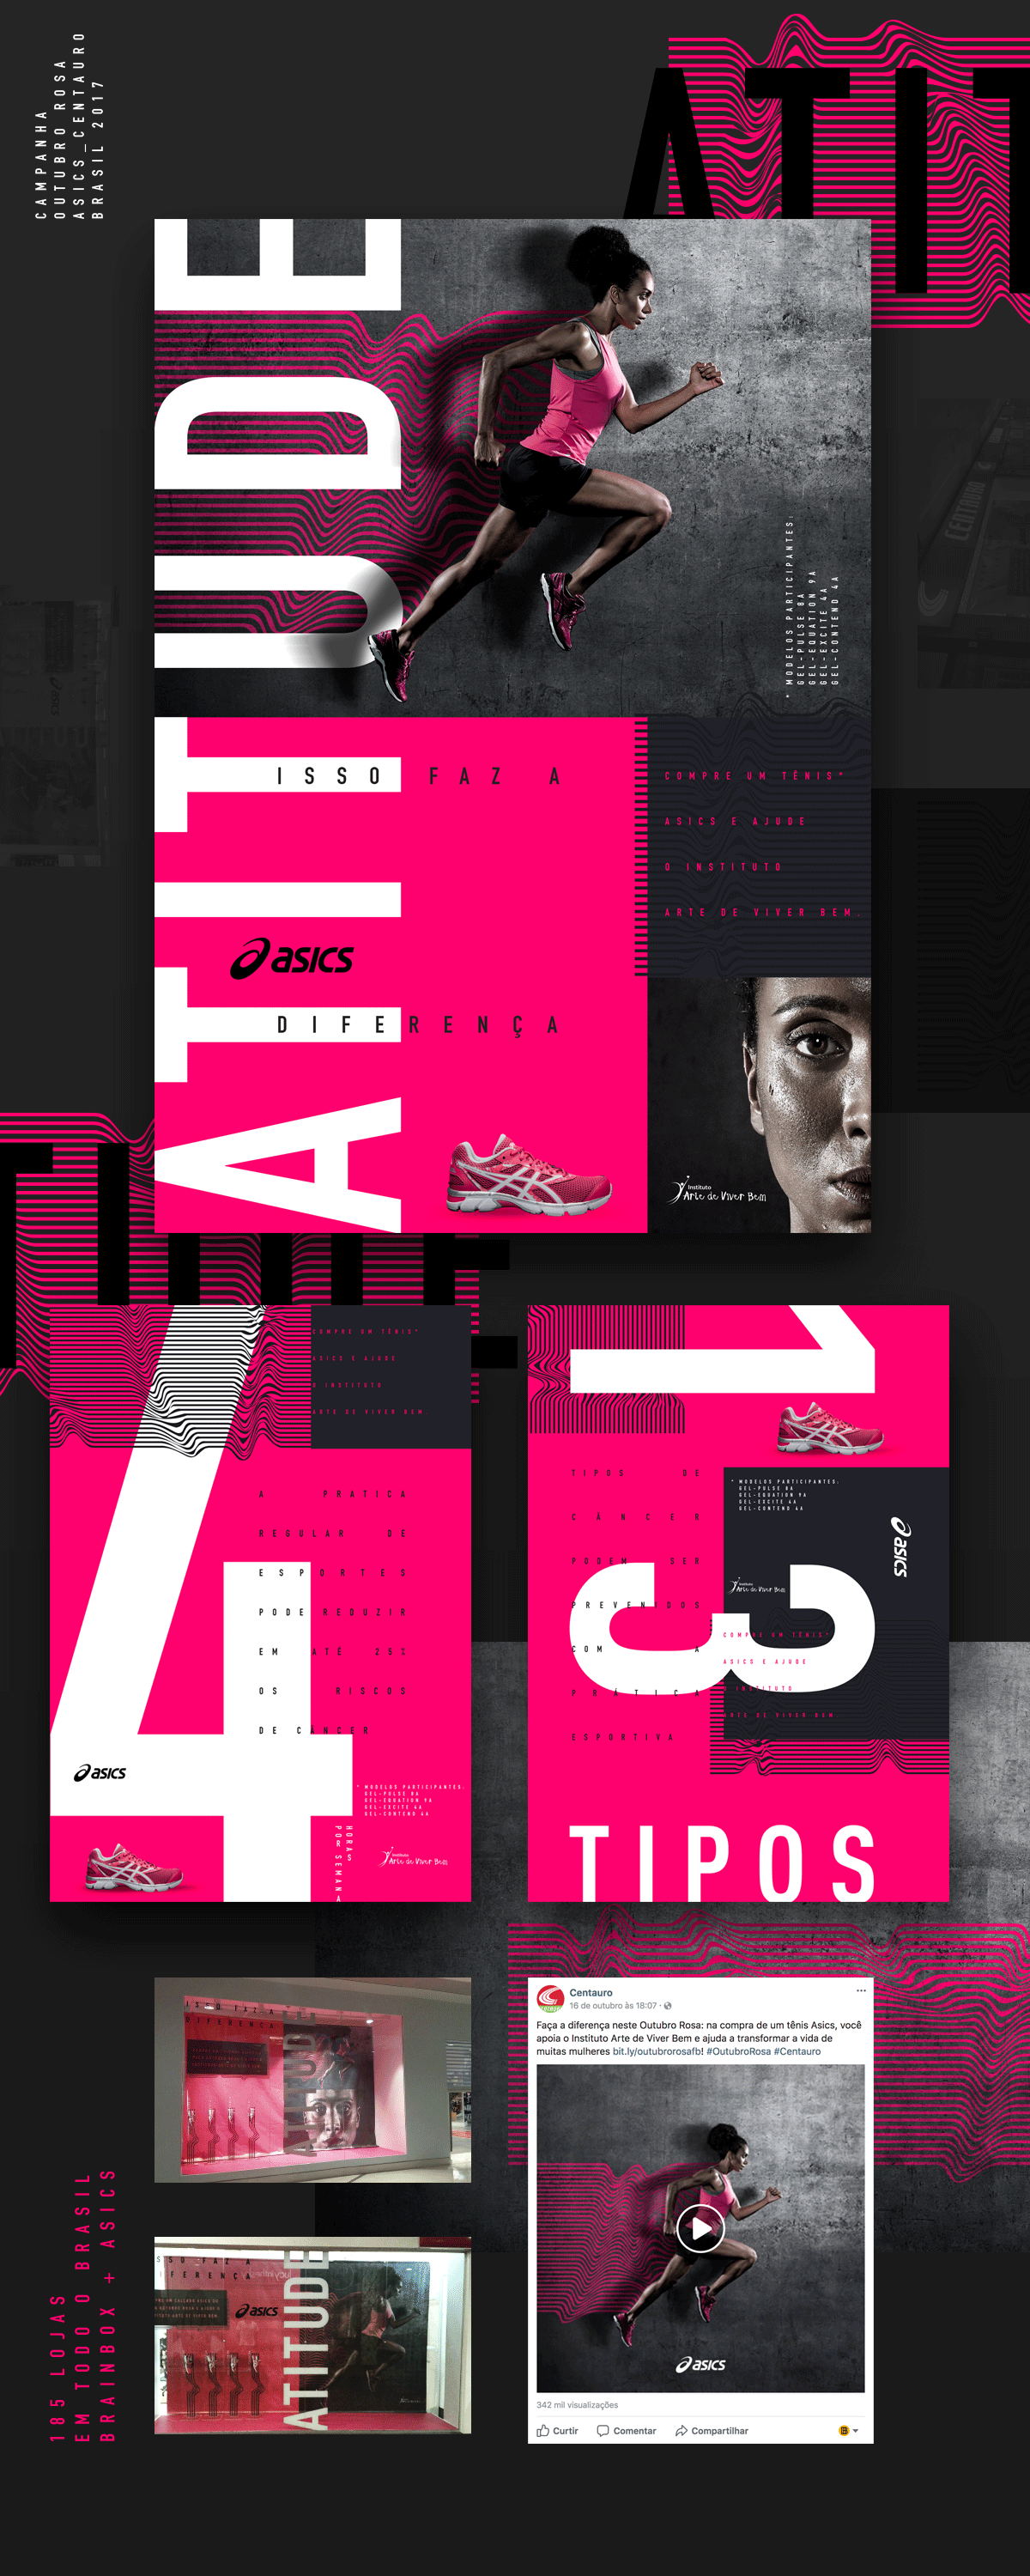 112e8b3d951 Asics – Pink October Campaign on Behance